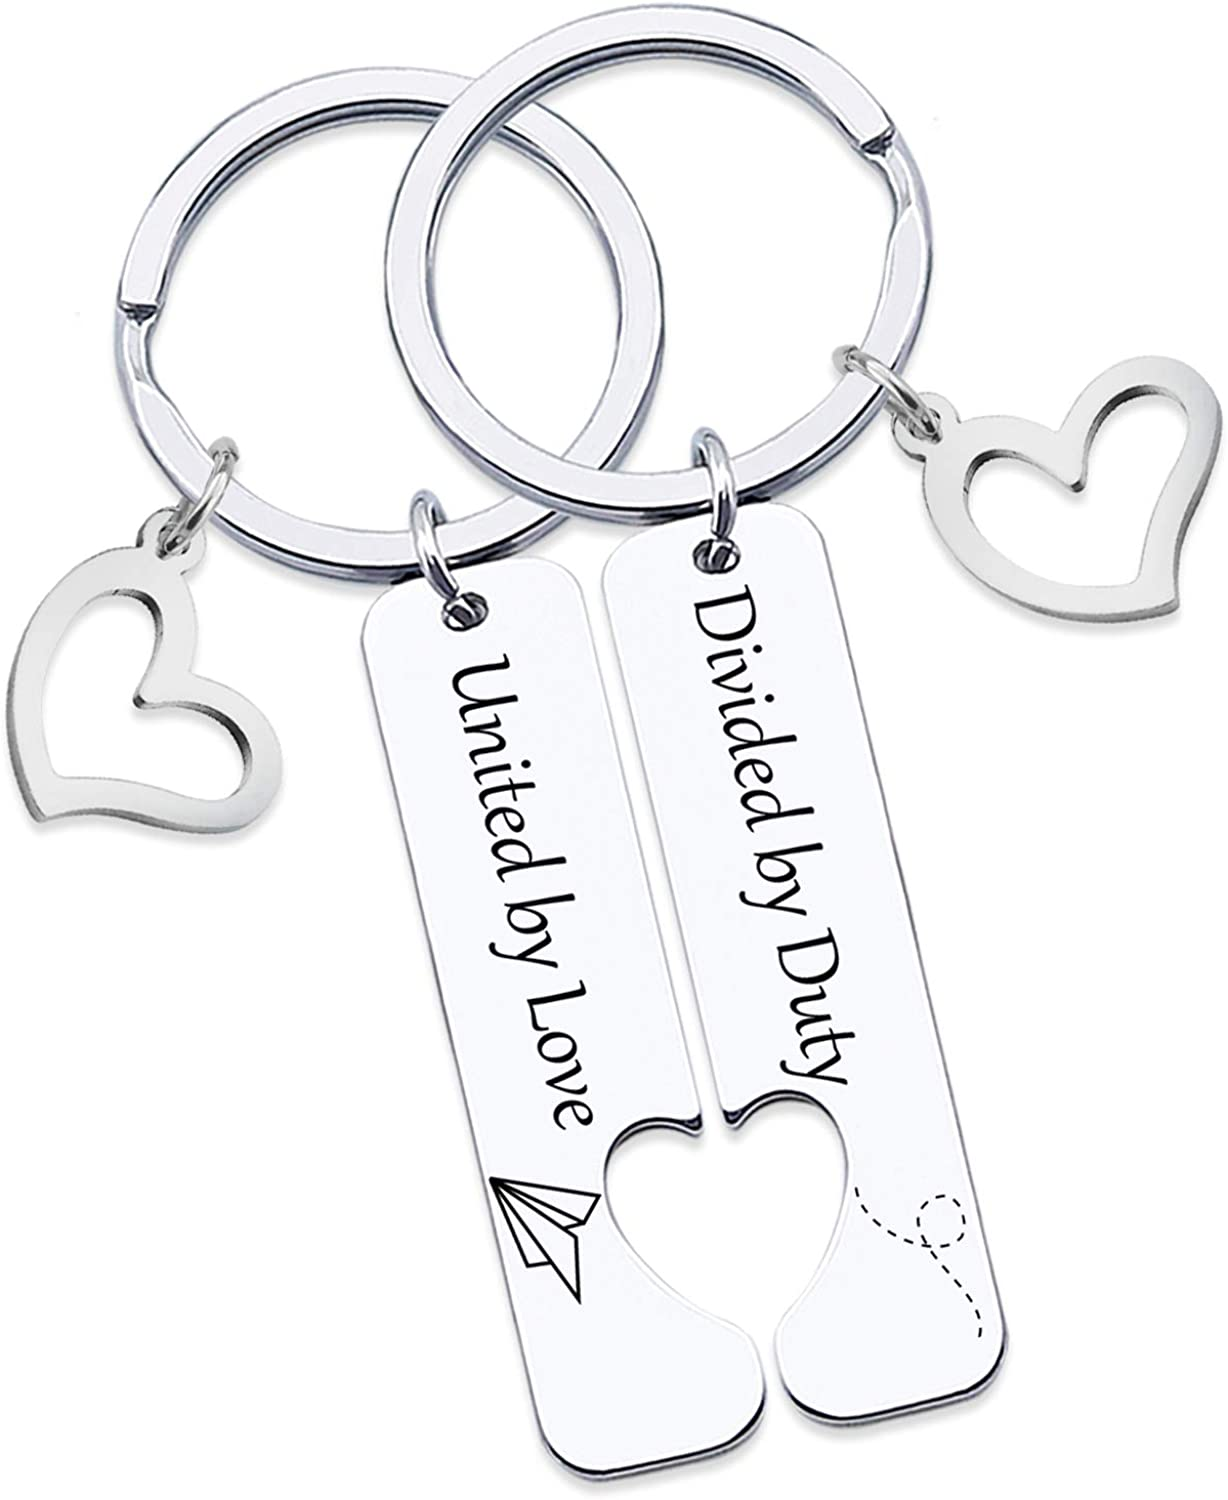 HN HNHB One Day Closer Couple Keychain Wife Girlfriend Gift Long Distance Relationship Gifts